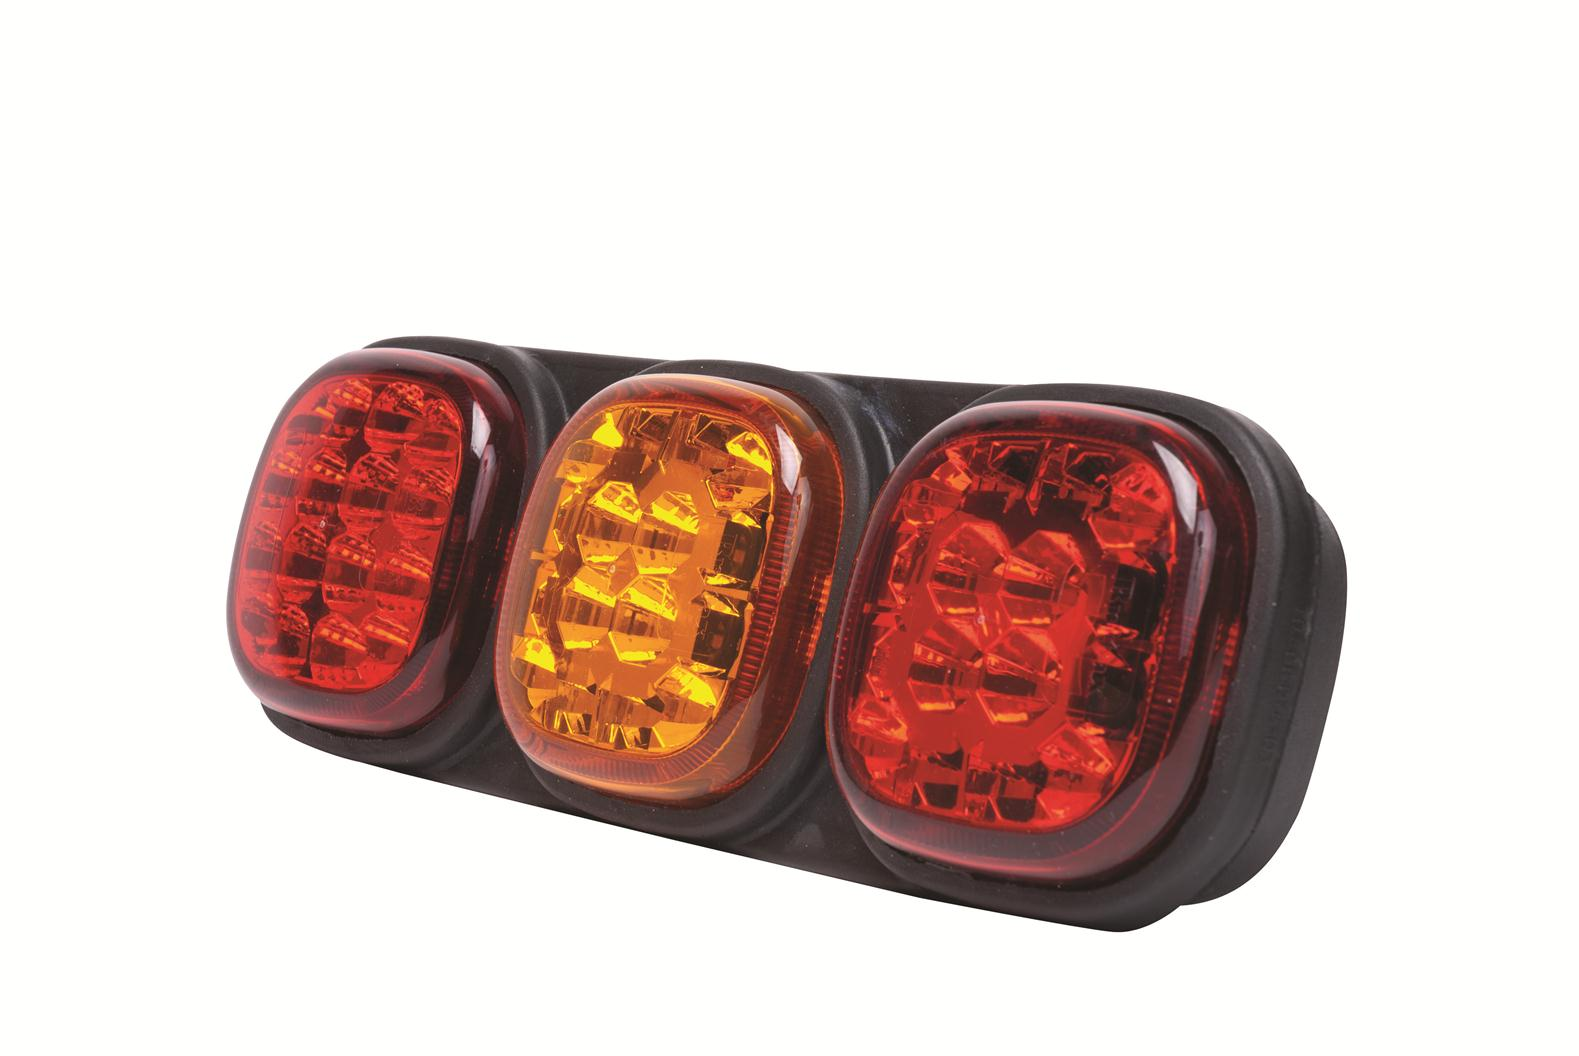 Britax L13 LED Rear Lamps